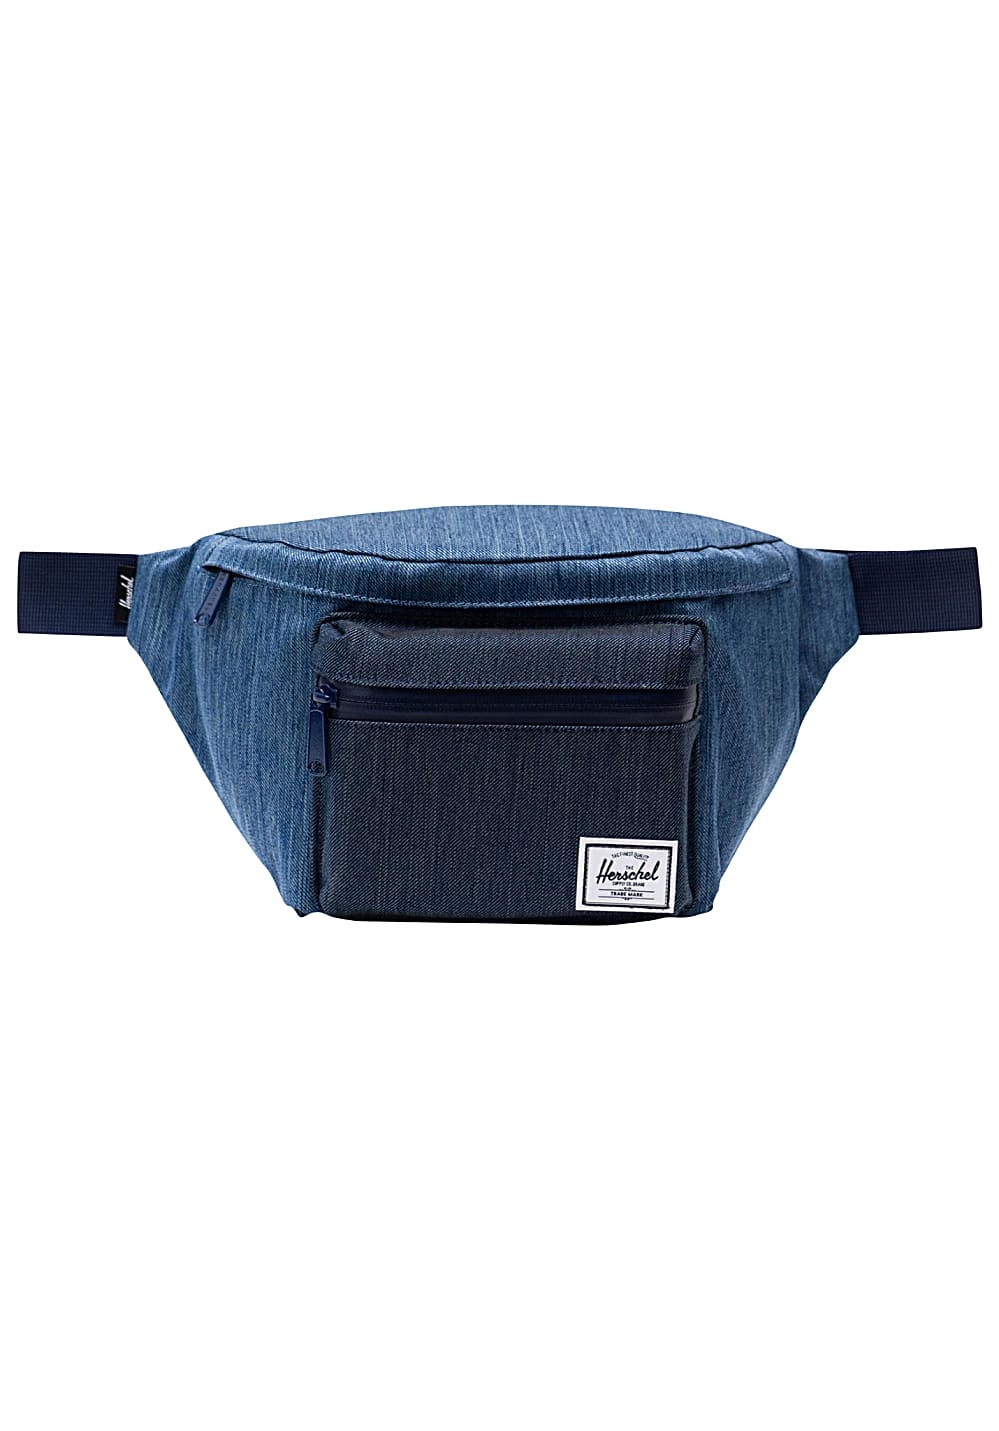 HERSCHEL SUPPLY CO Seventeen Tasche - Blau